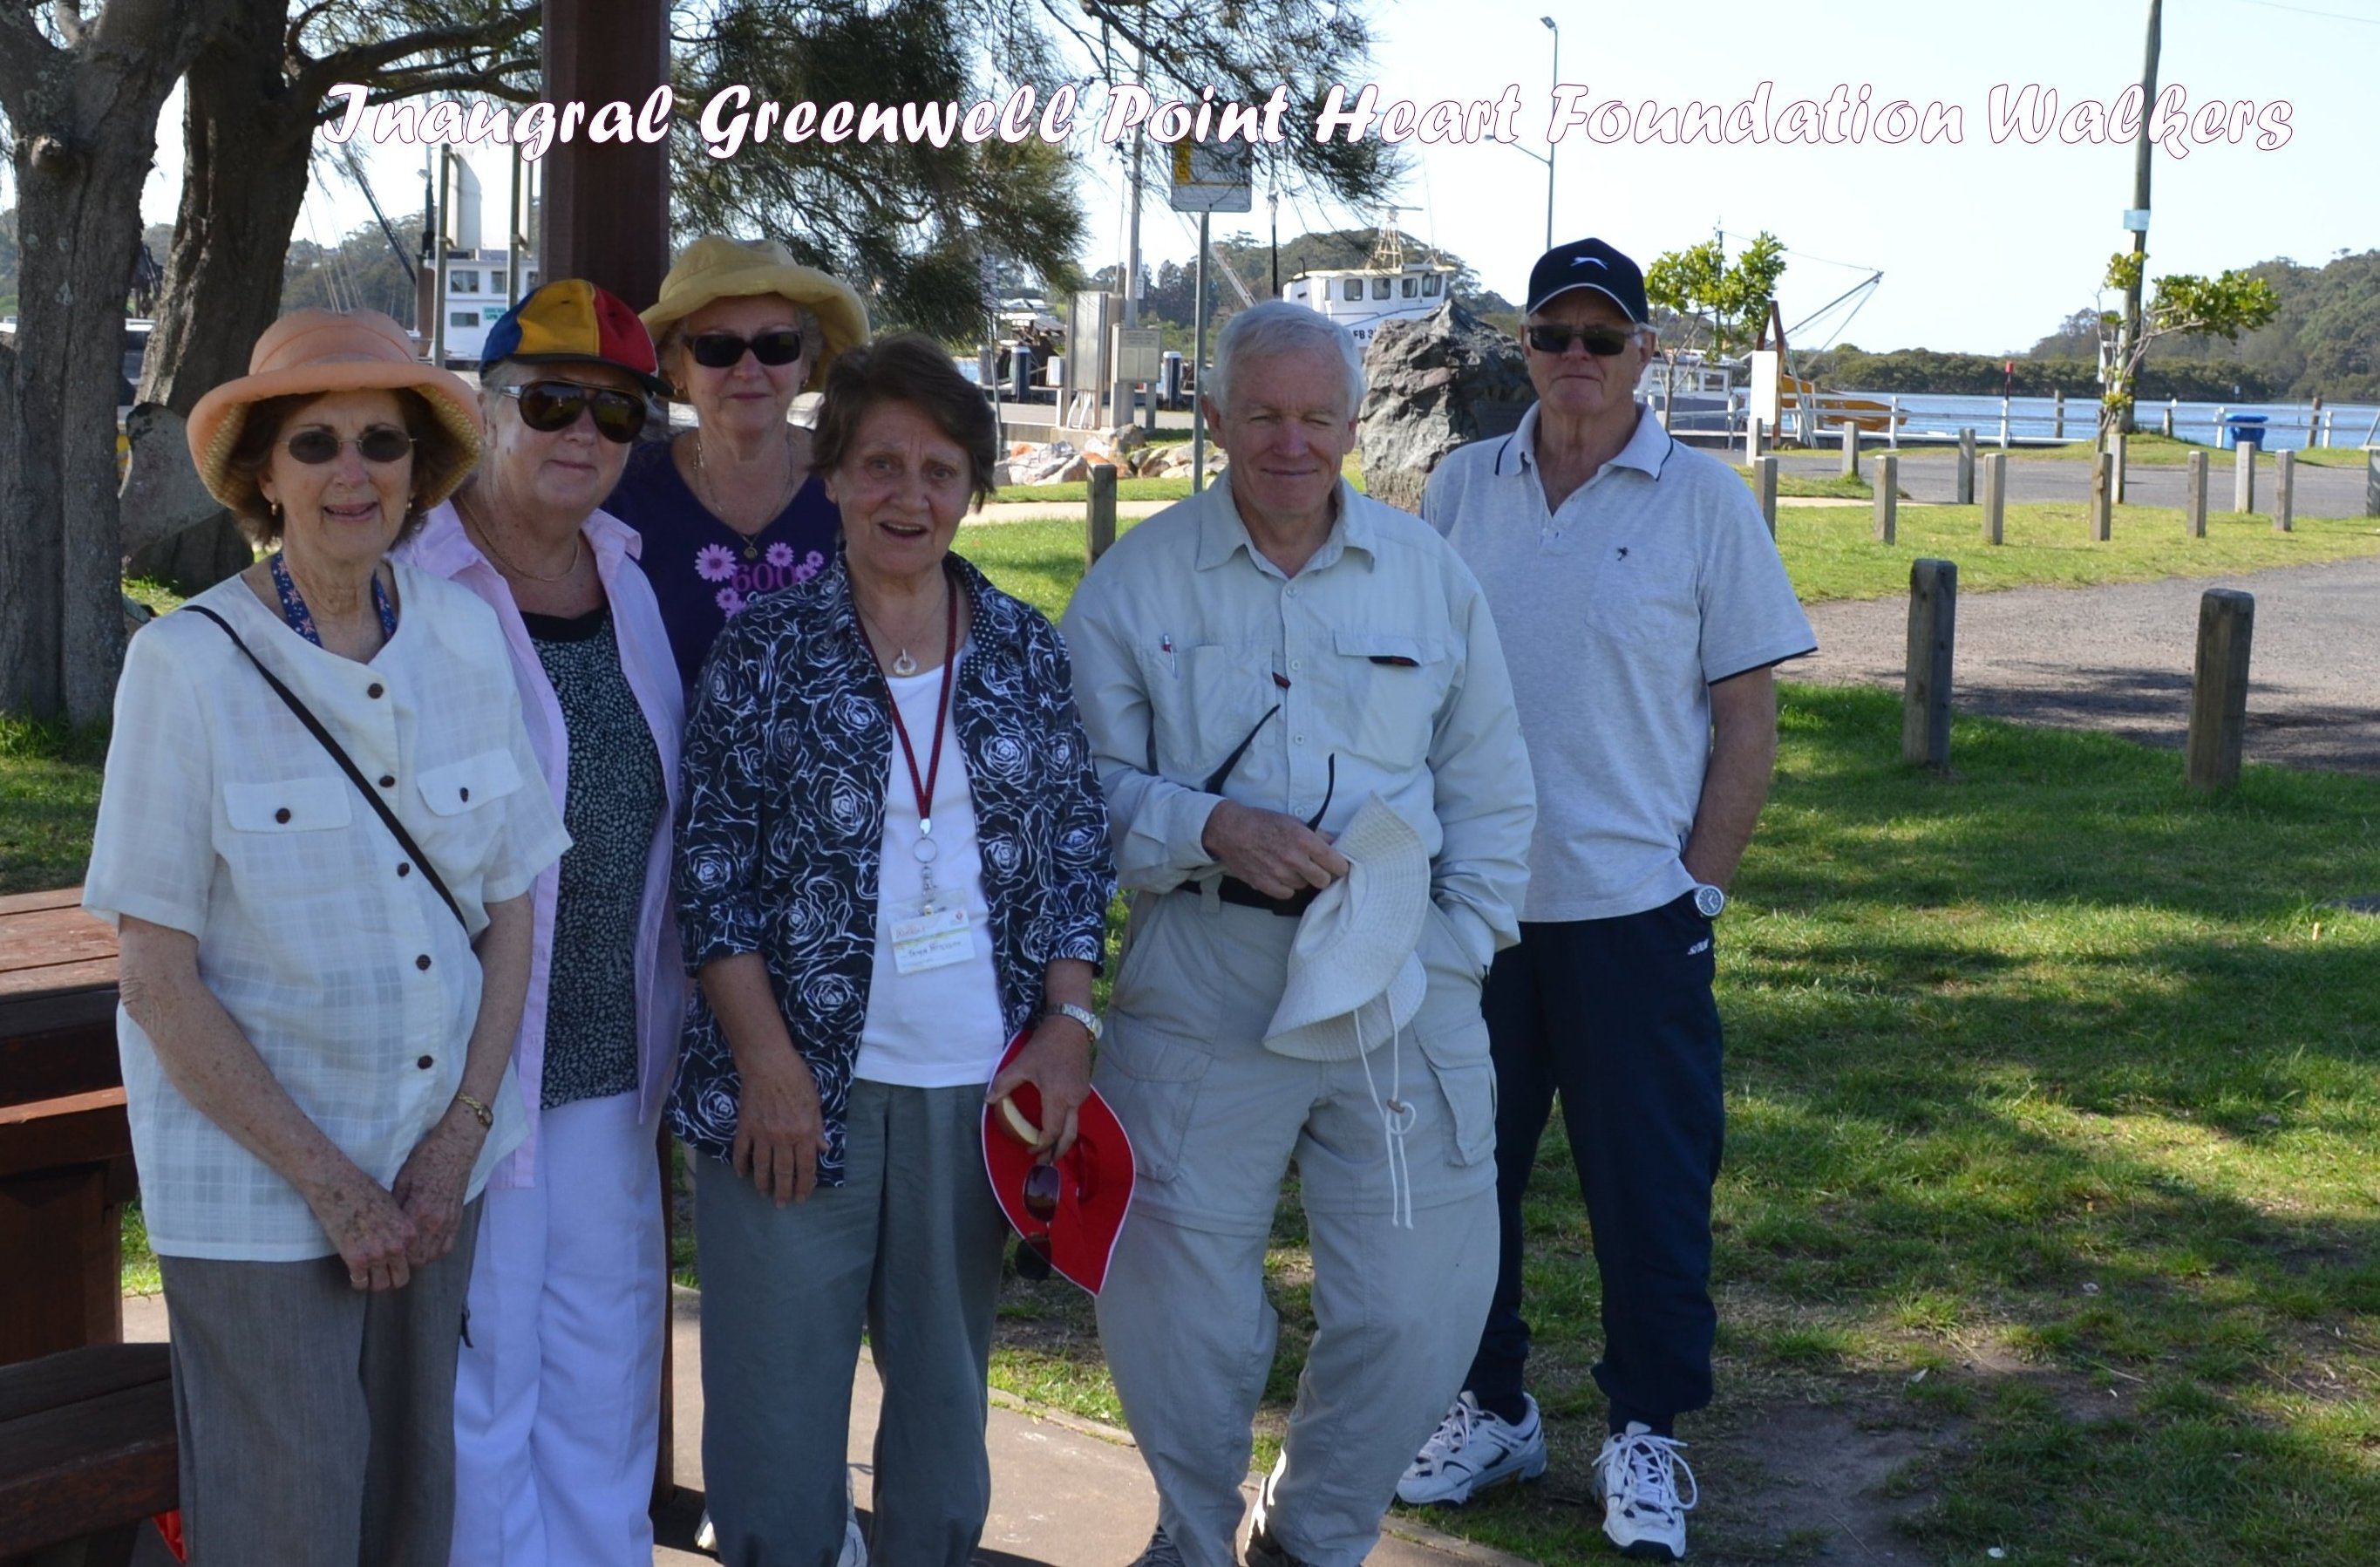 Greenwell Point Heart Foundation Walking Group